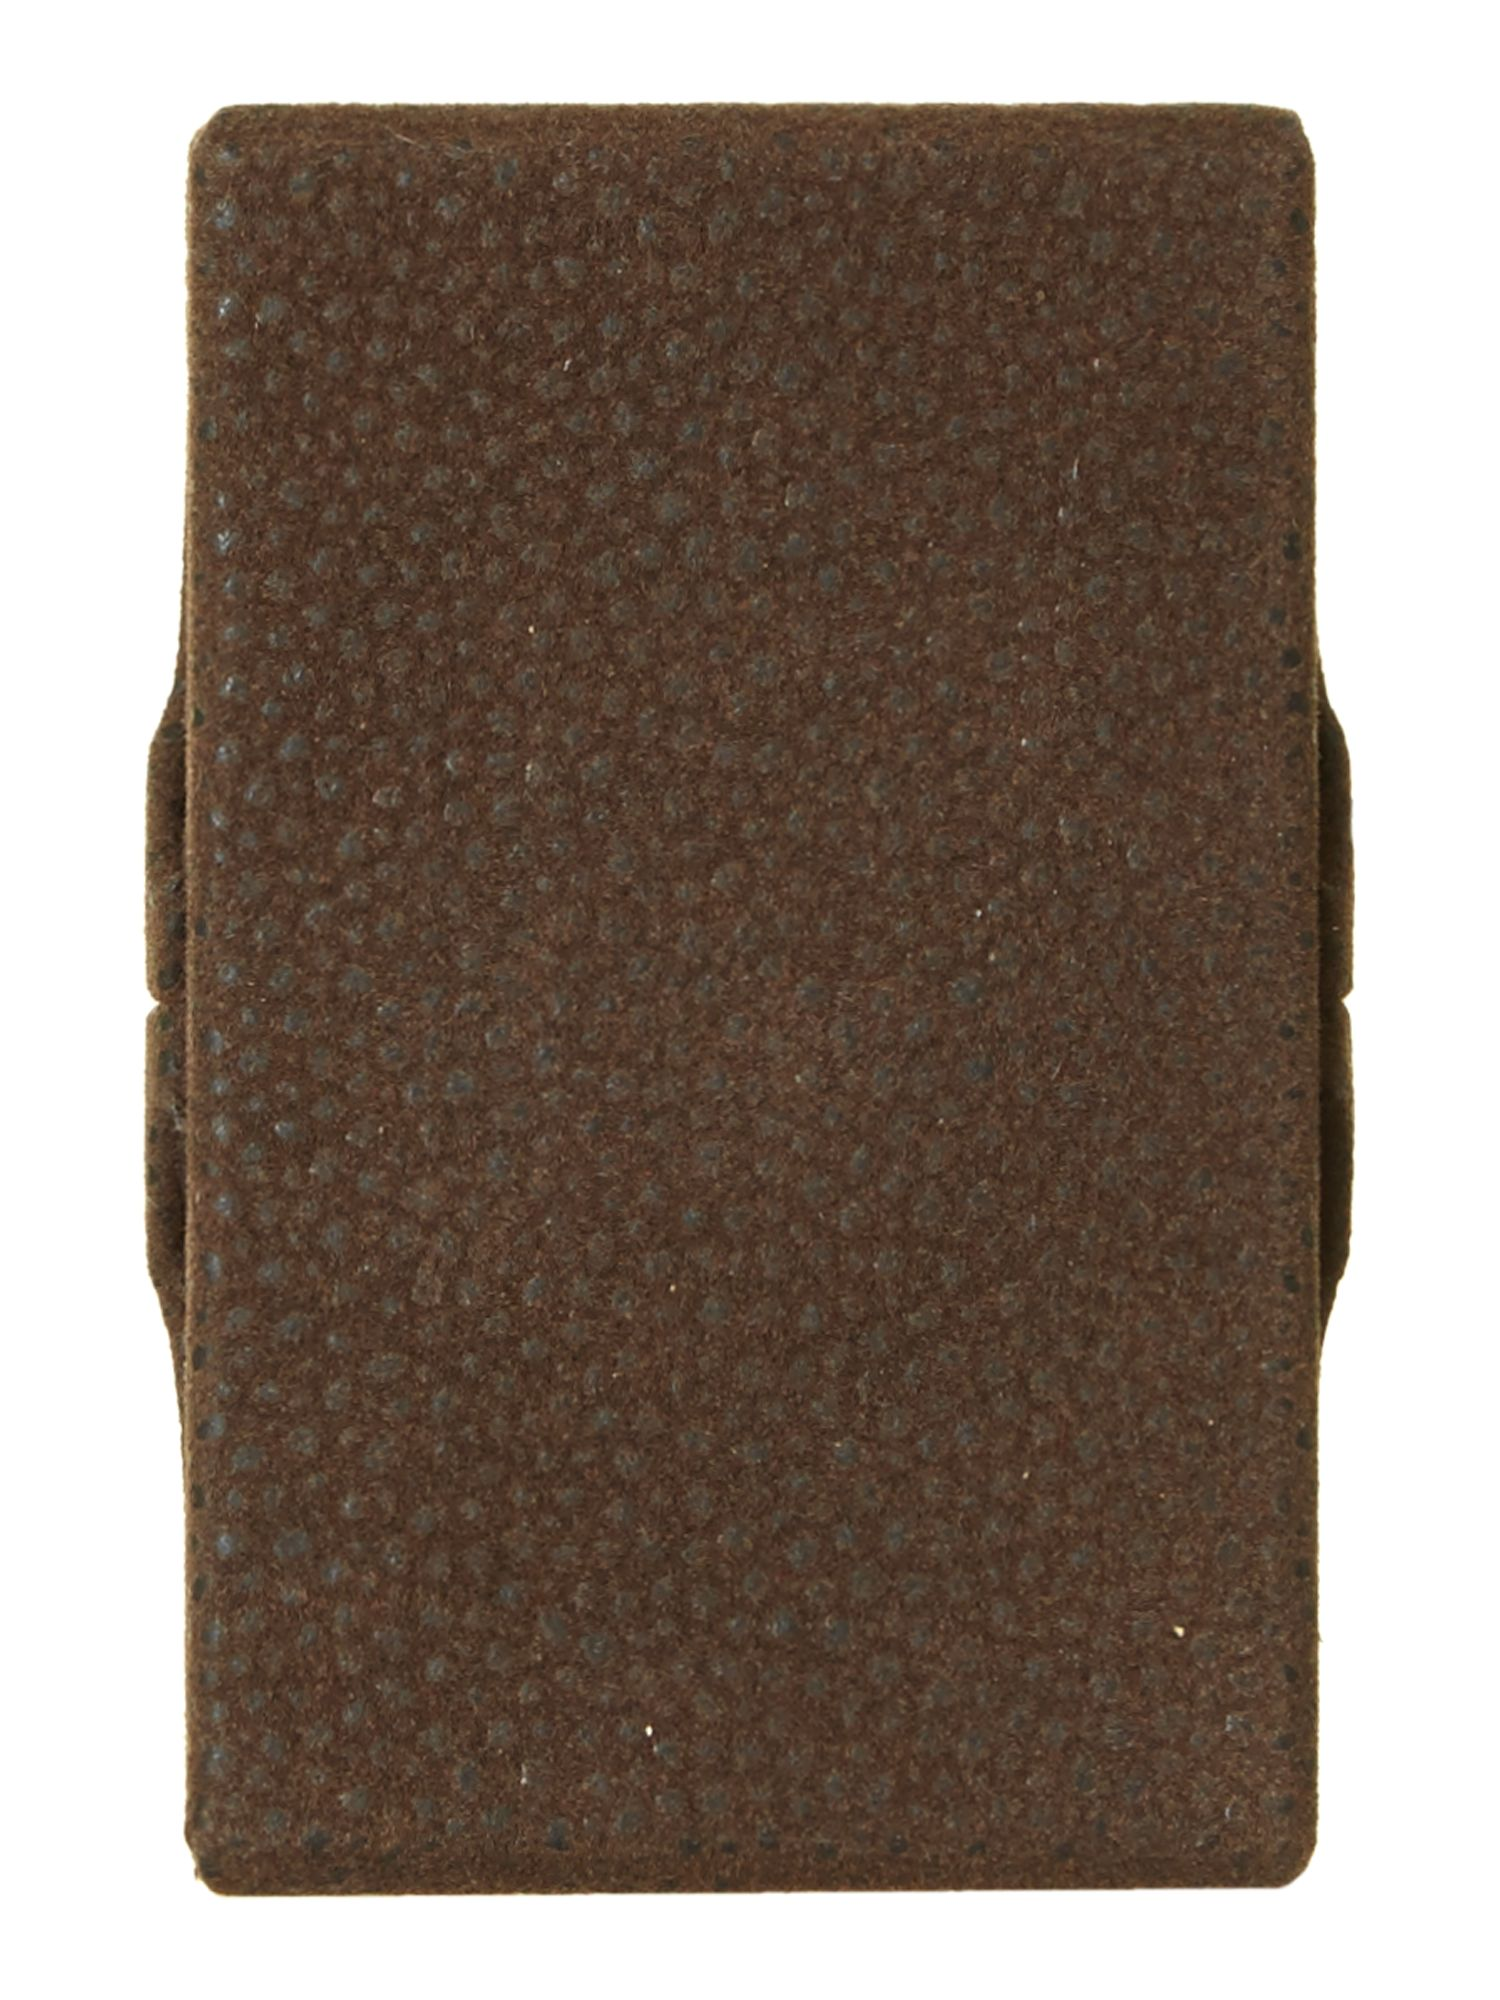 Scotch grain hard card case